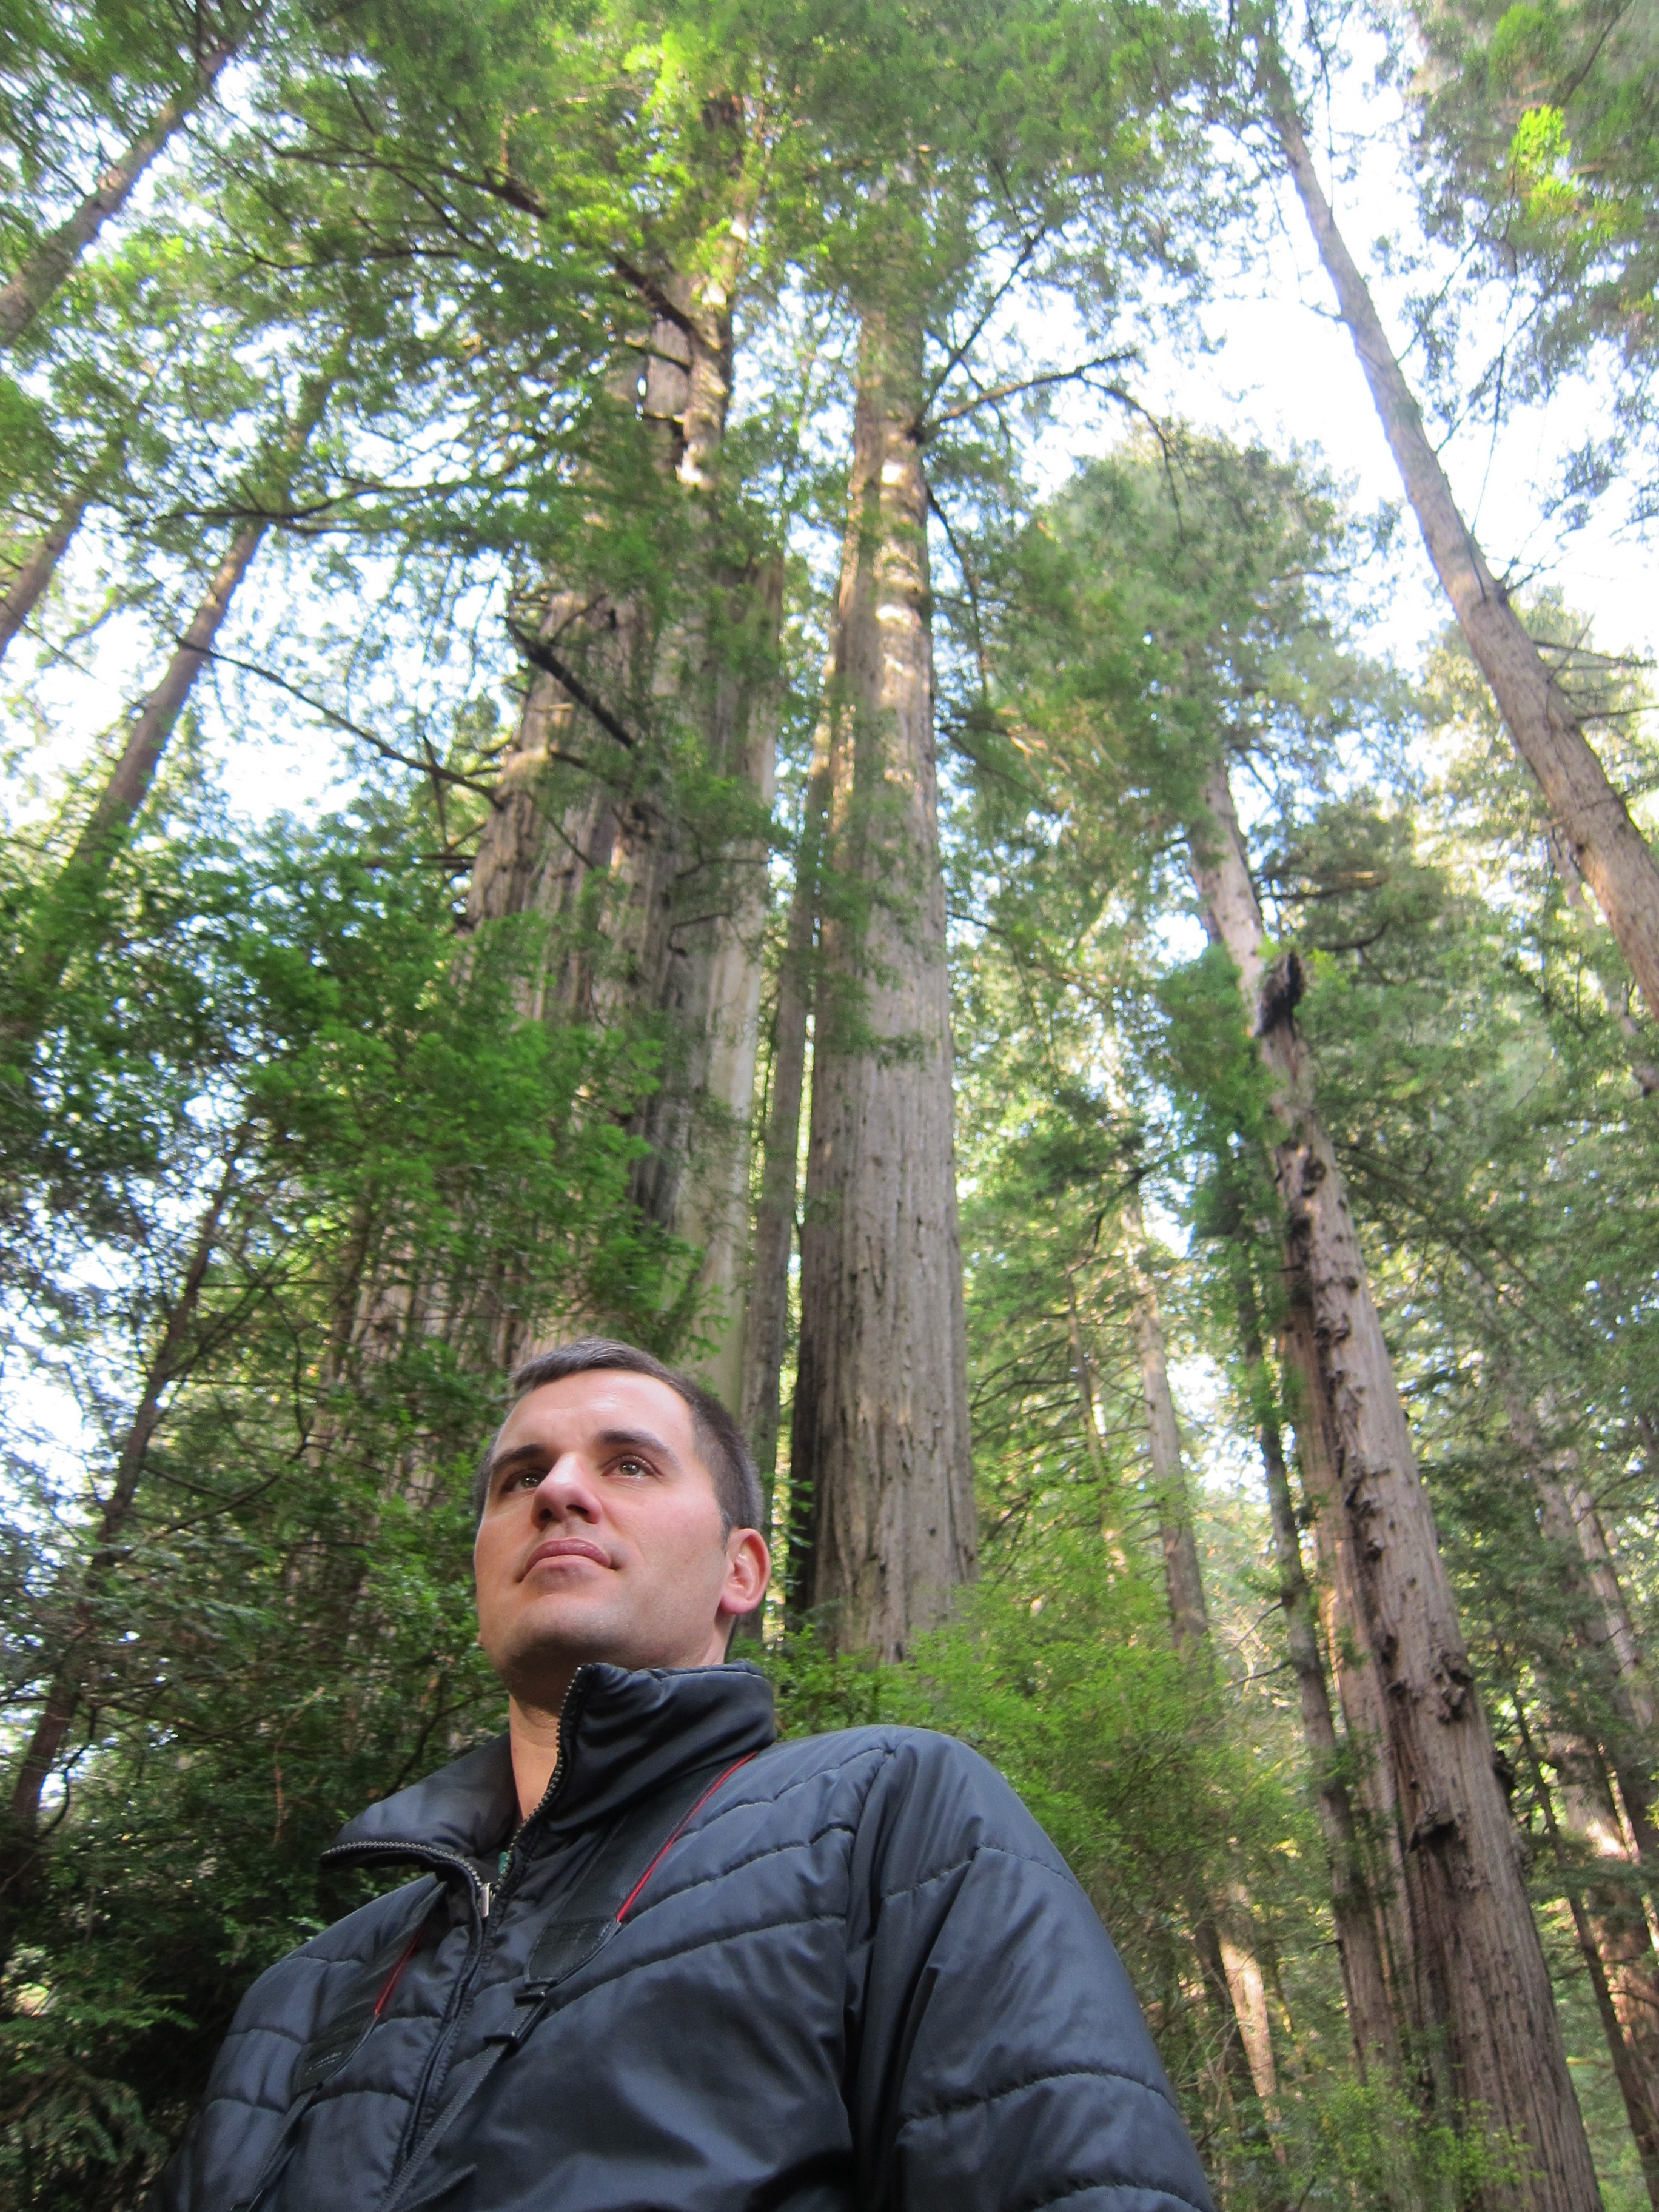 Kenny in the Redwood Forest